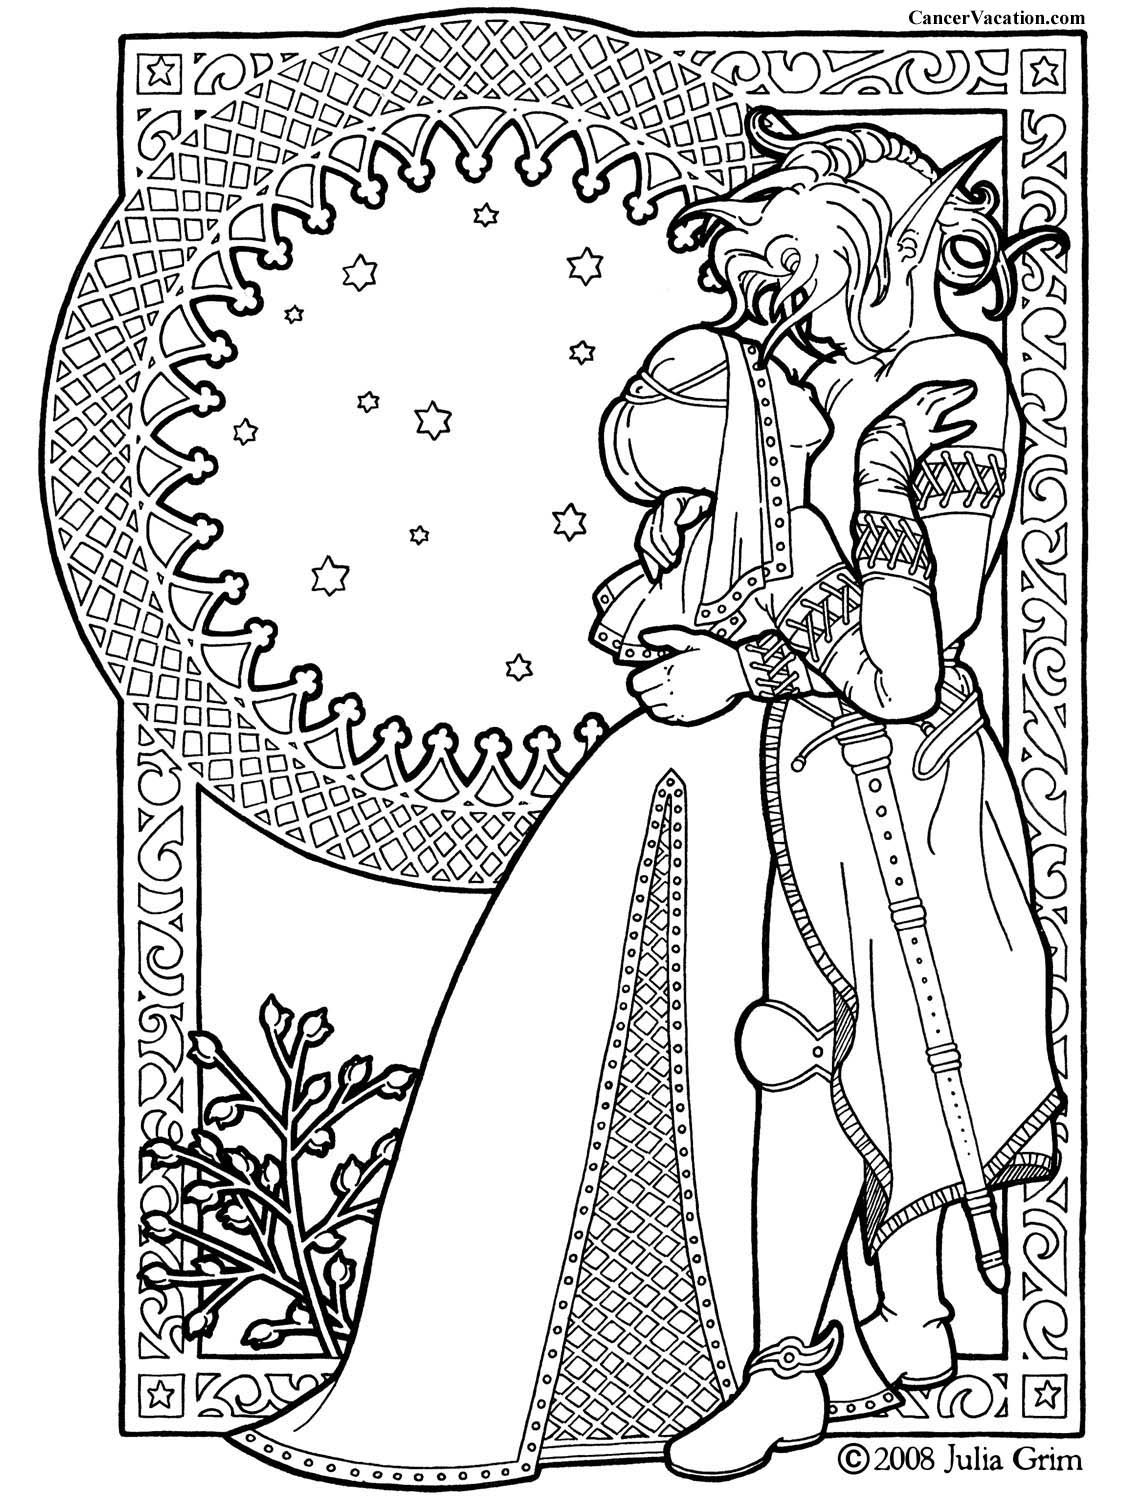 Complicated coloring pages for adults fantasy couple coloring book page click for printable version